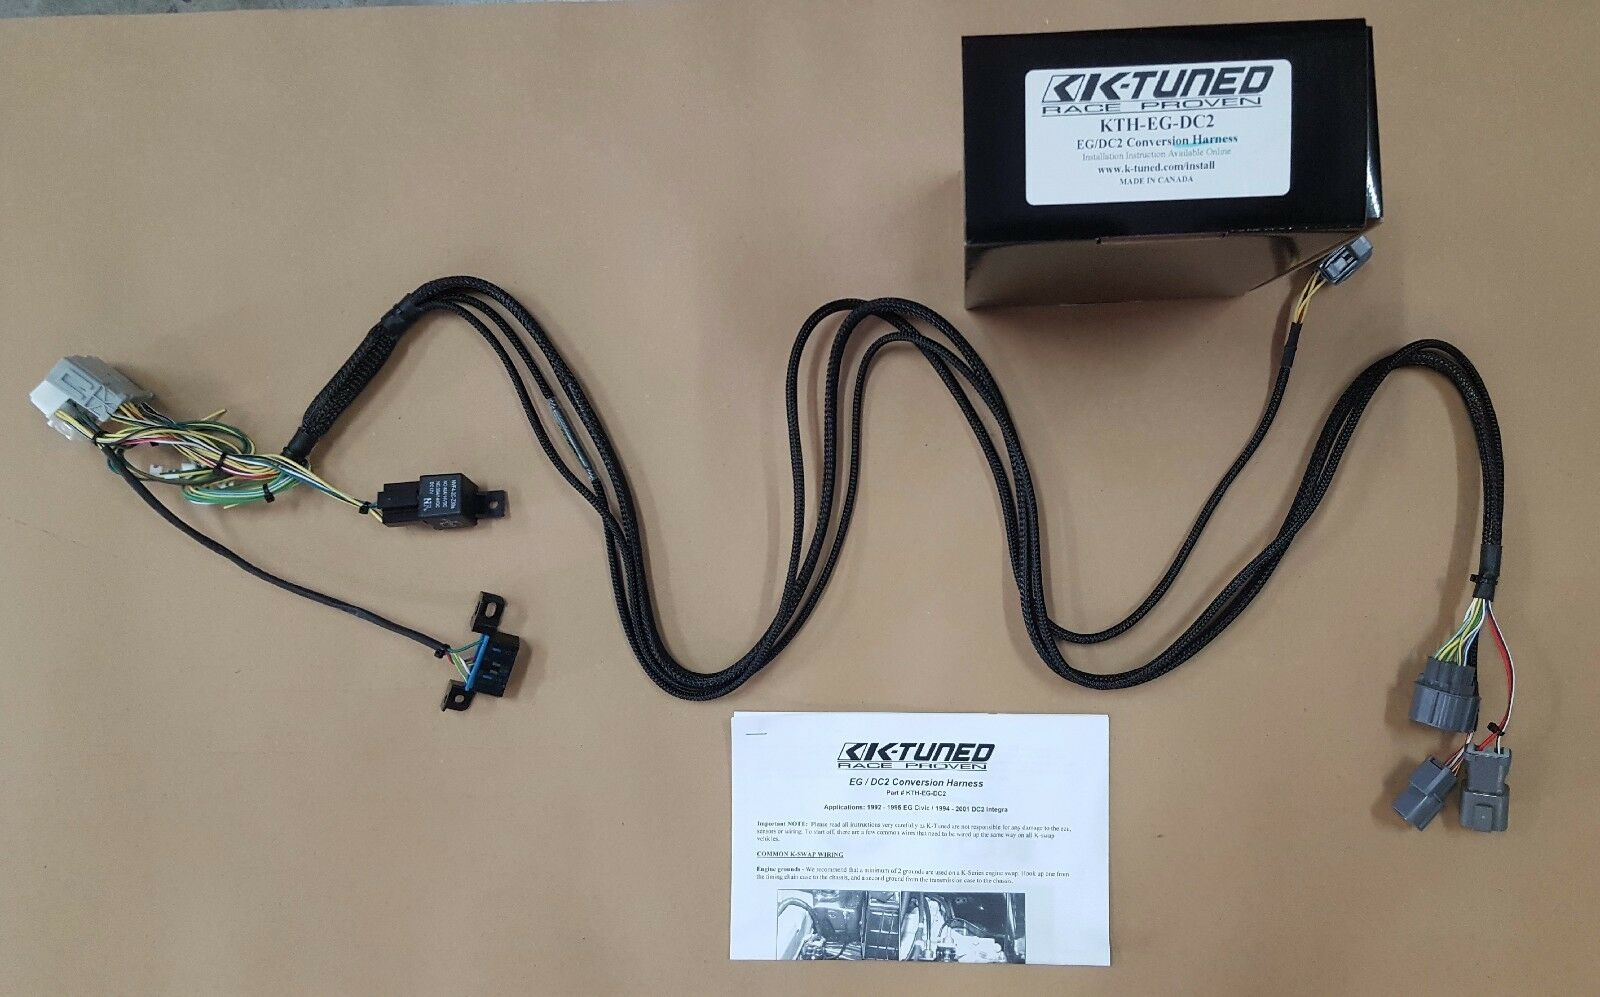 wiring cdx stereo diagram car sony gtr330 c472b7 eg wiring harness wiring resources  c472b7 eg wiring harness wiring resources